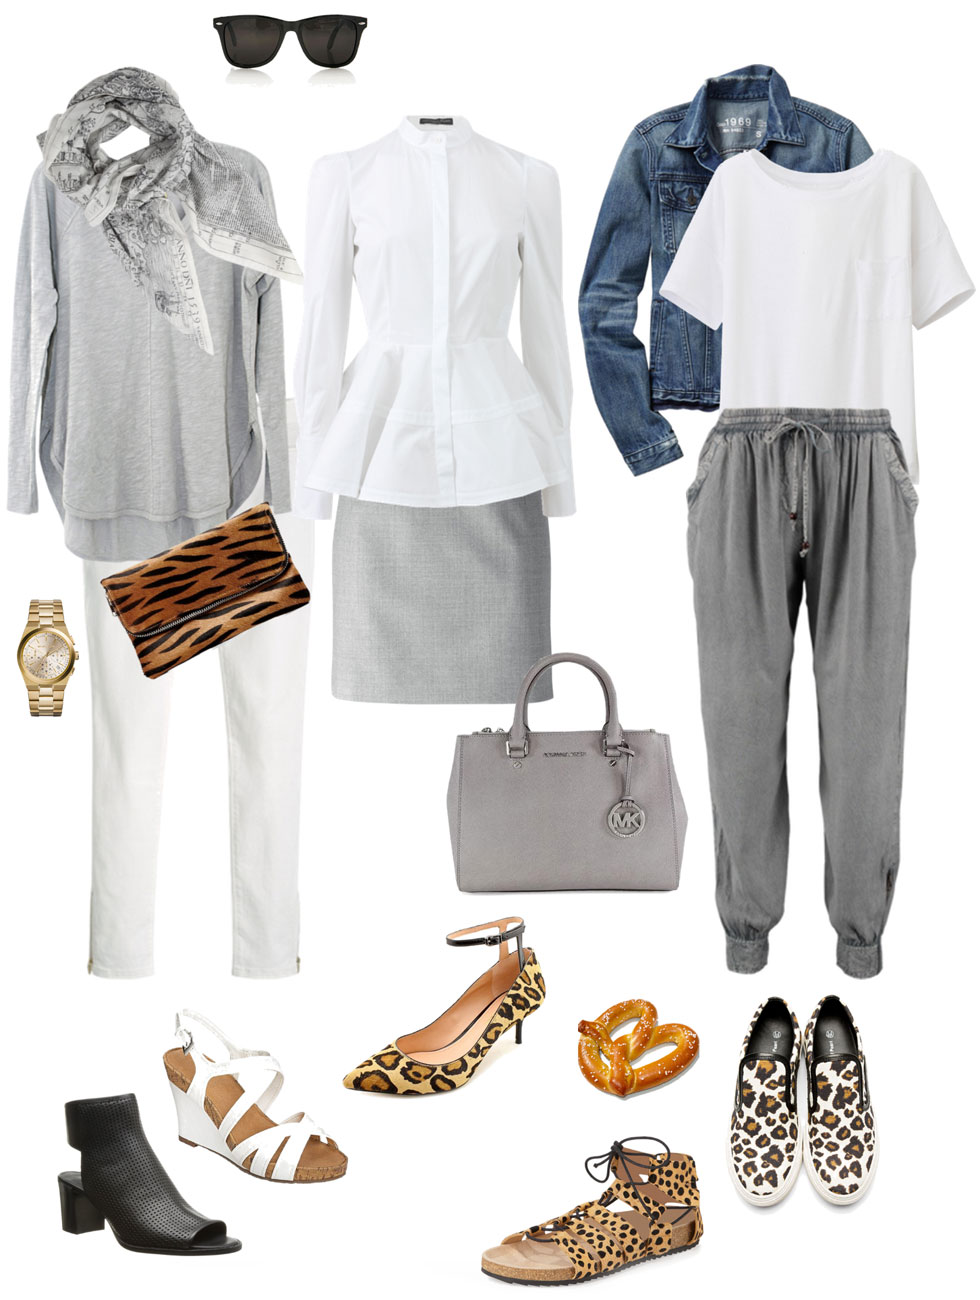 Ensemble: White, Grey and Animal Print